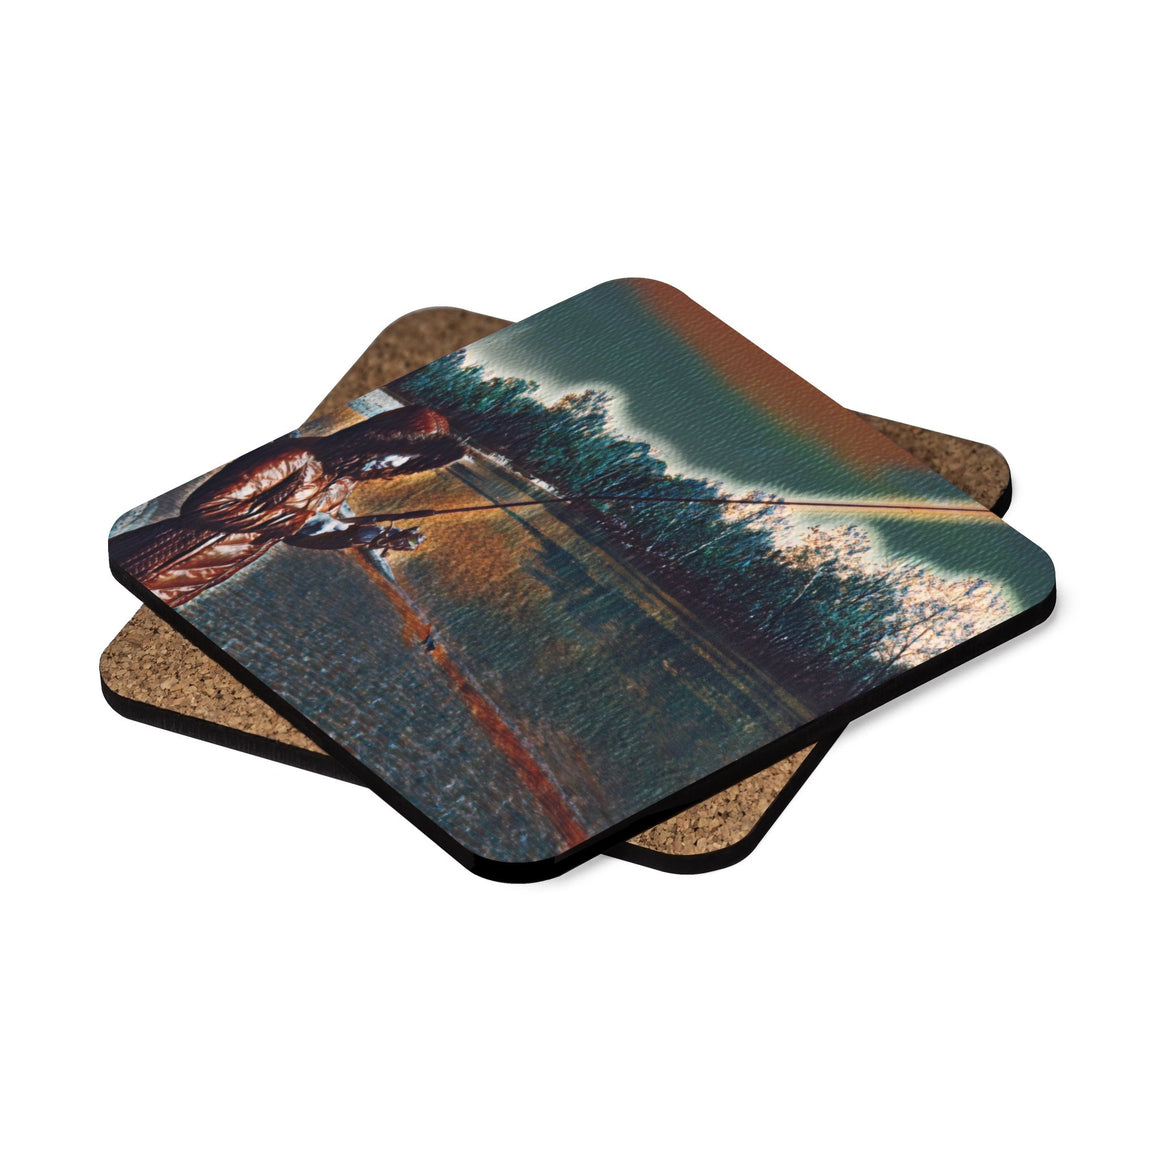 Levi Thang Fishing Design 6 Square Hardboard Coaster Set - 4pcs - I Am A Dreamer